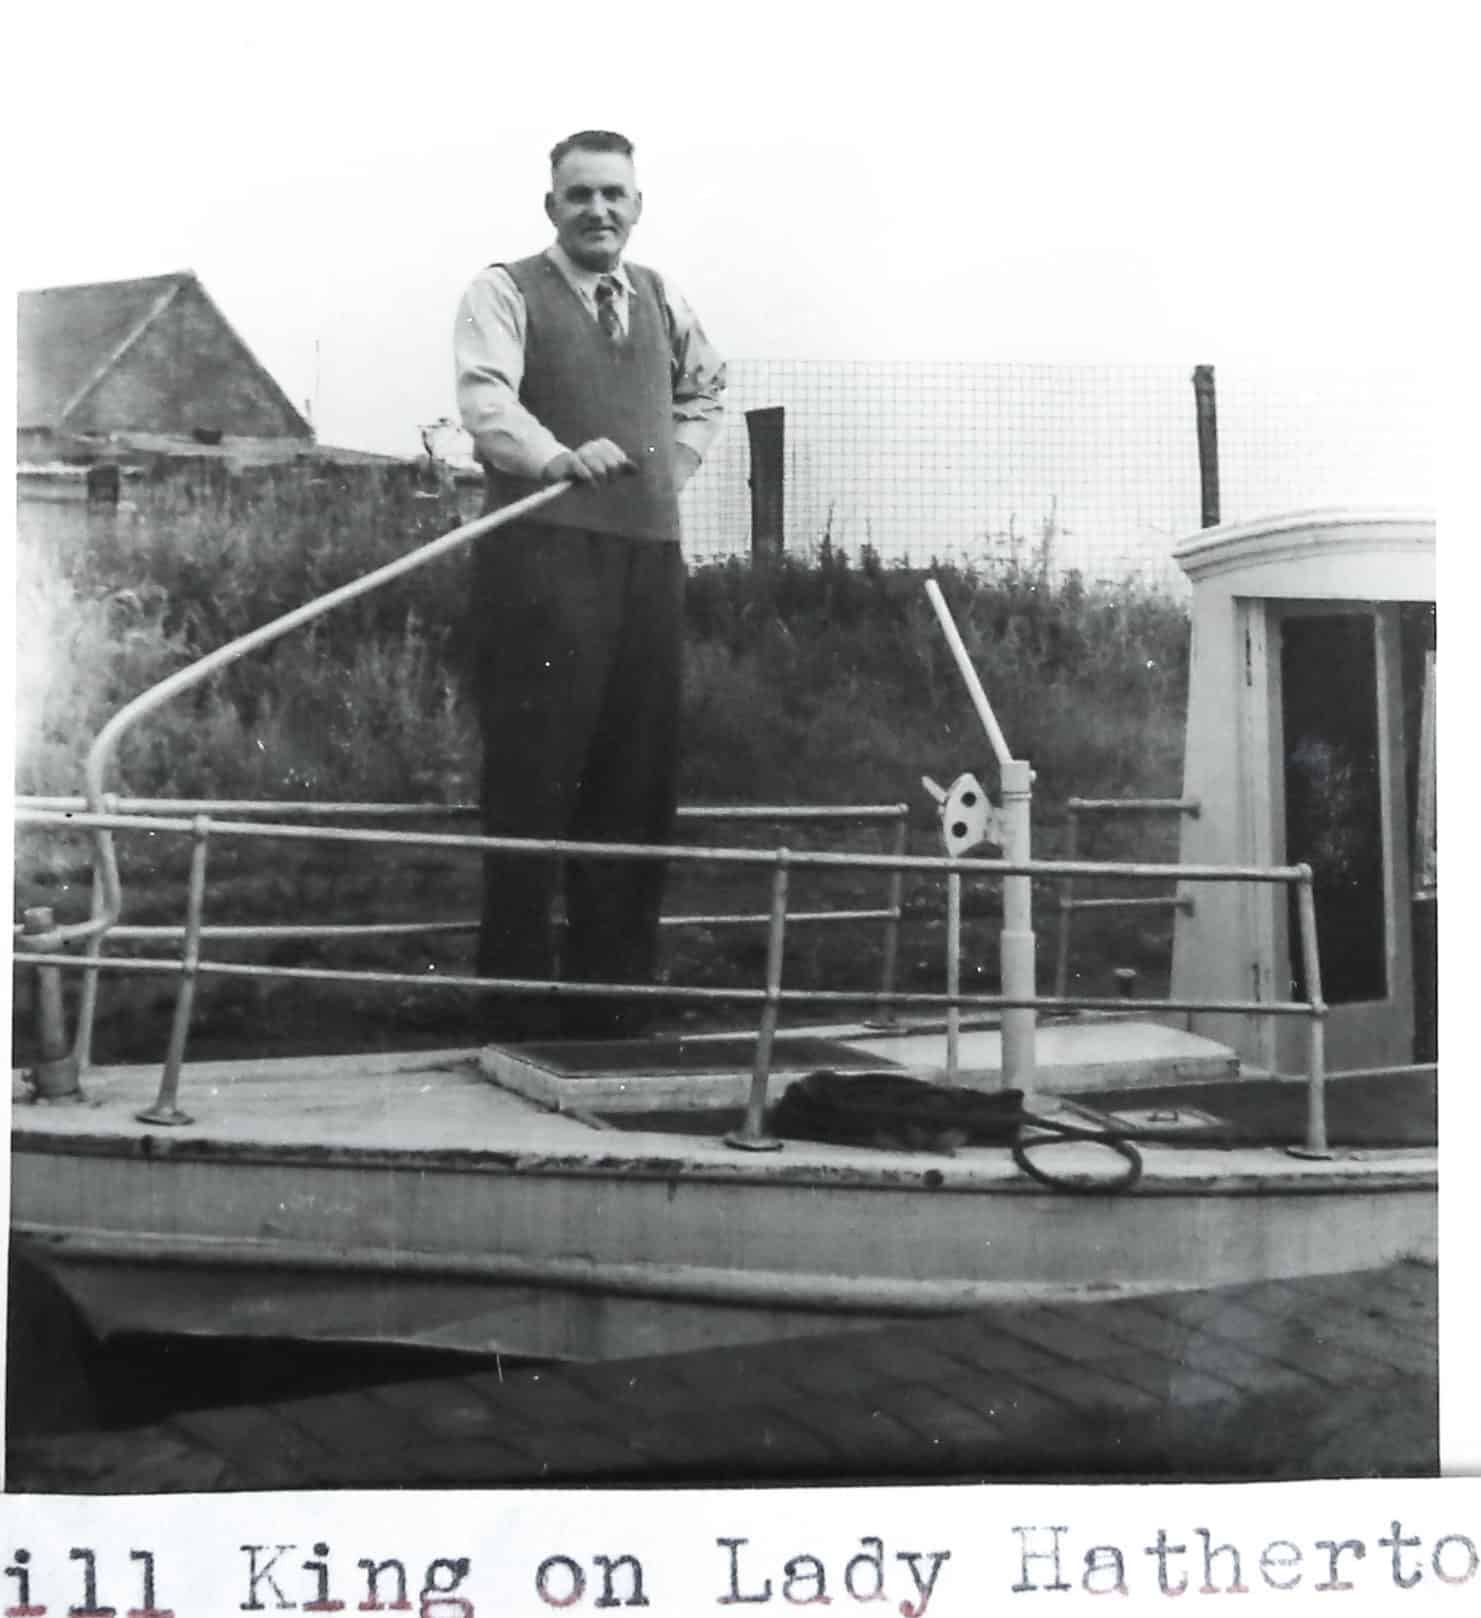 Will King standing on the boat the Lady Hatherton